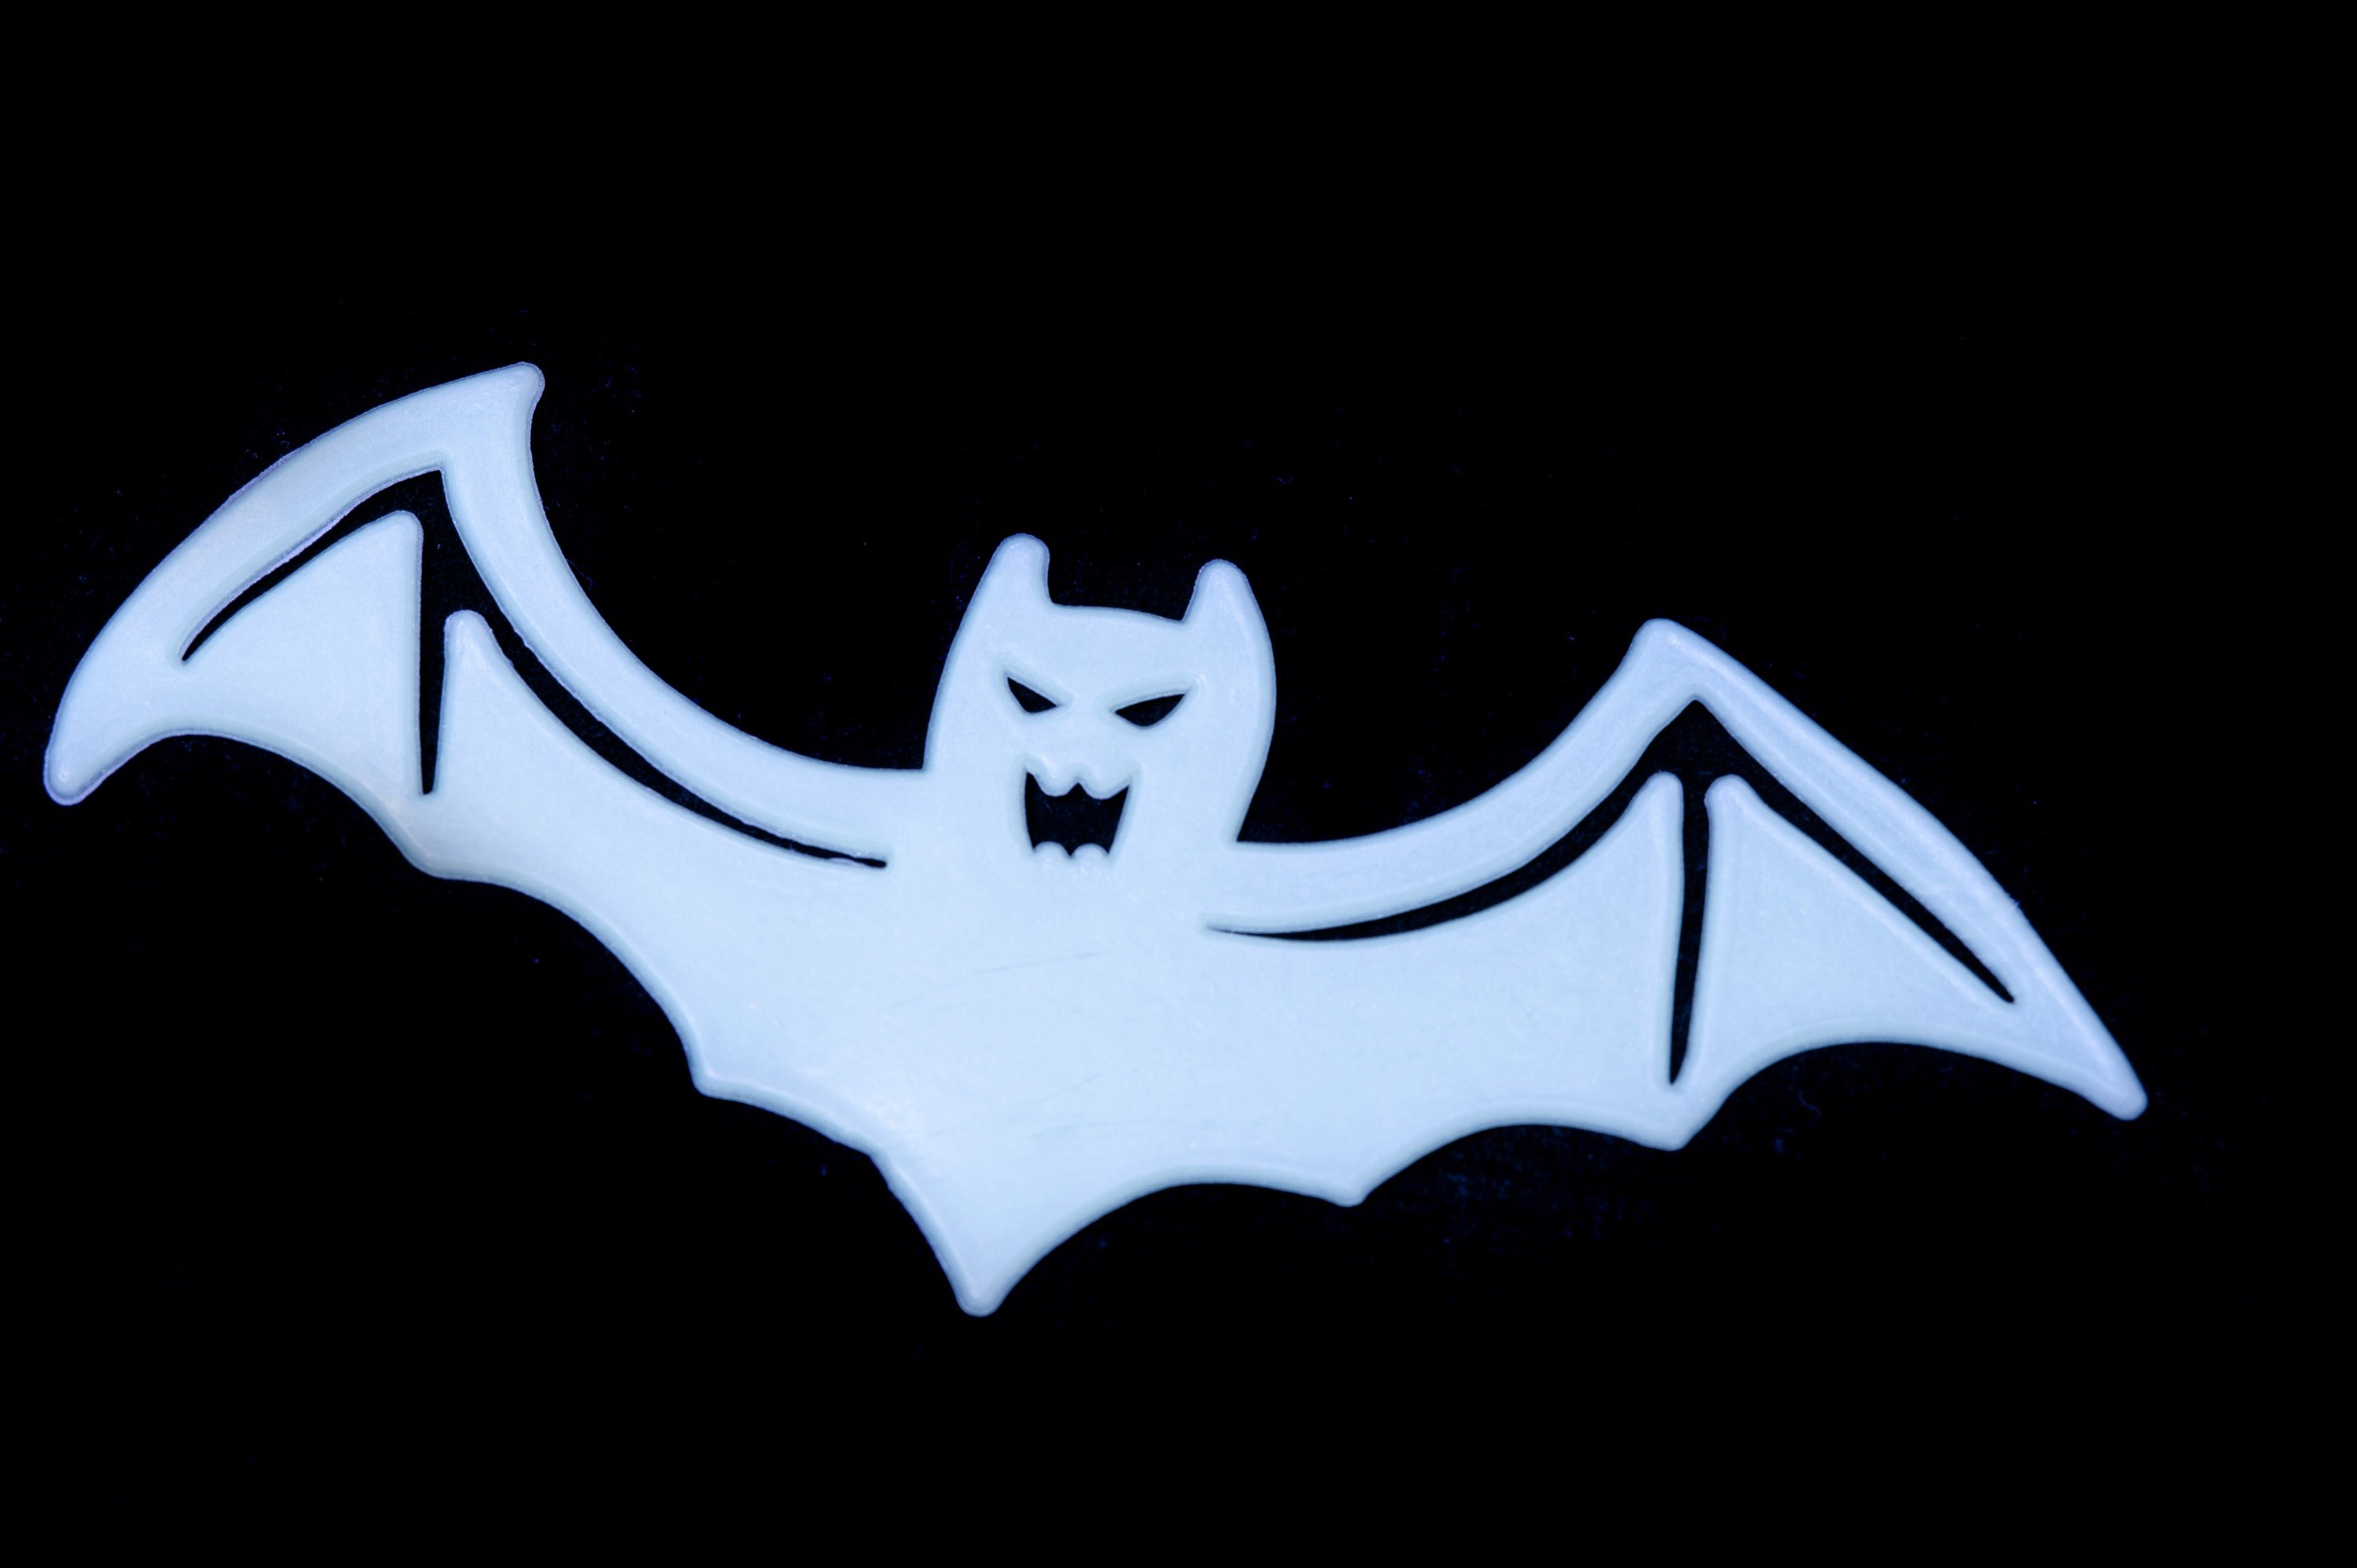 Image of bat shape | CreepyHalloweenImages